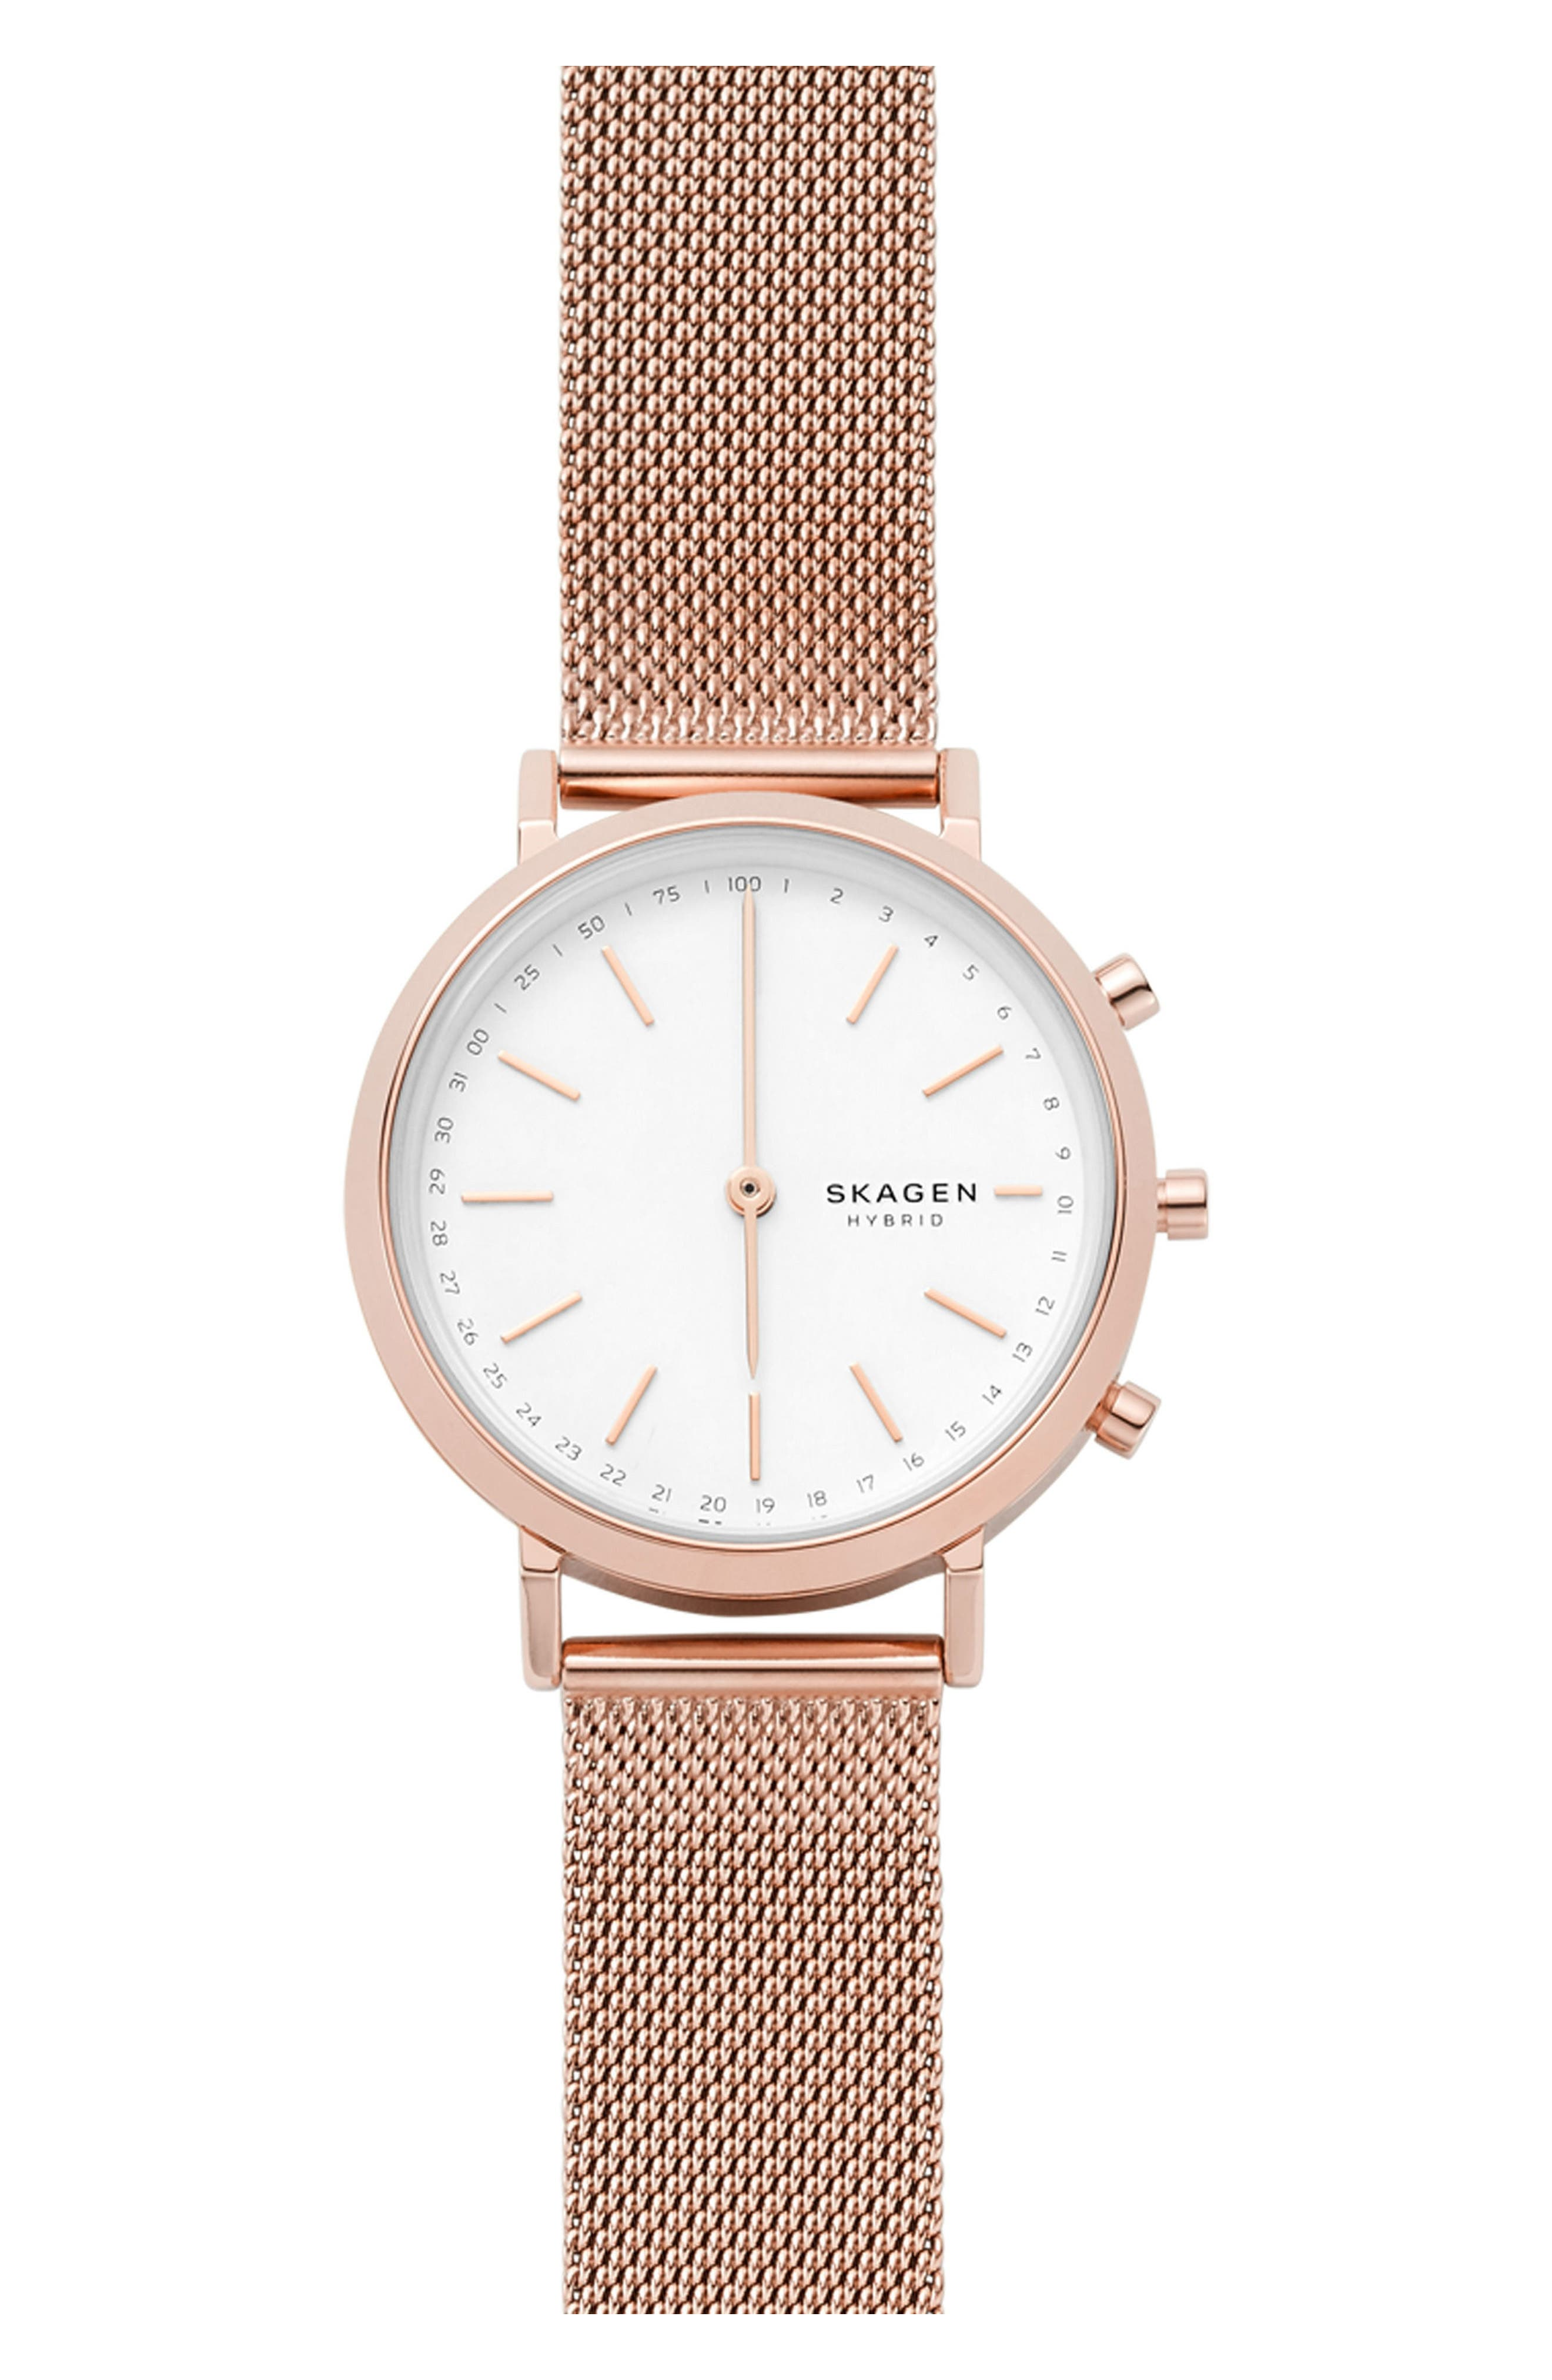 Hald Mesh Strap Hybrid Smart Watch, 34mm,                             Main thumbnail 1, color,                             Rose Gold/ White/ Rose Gold